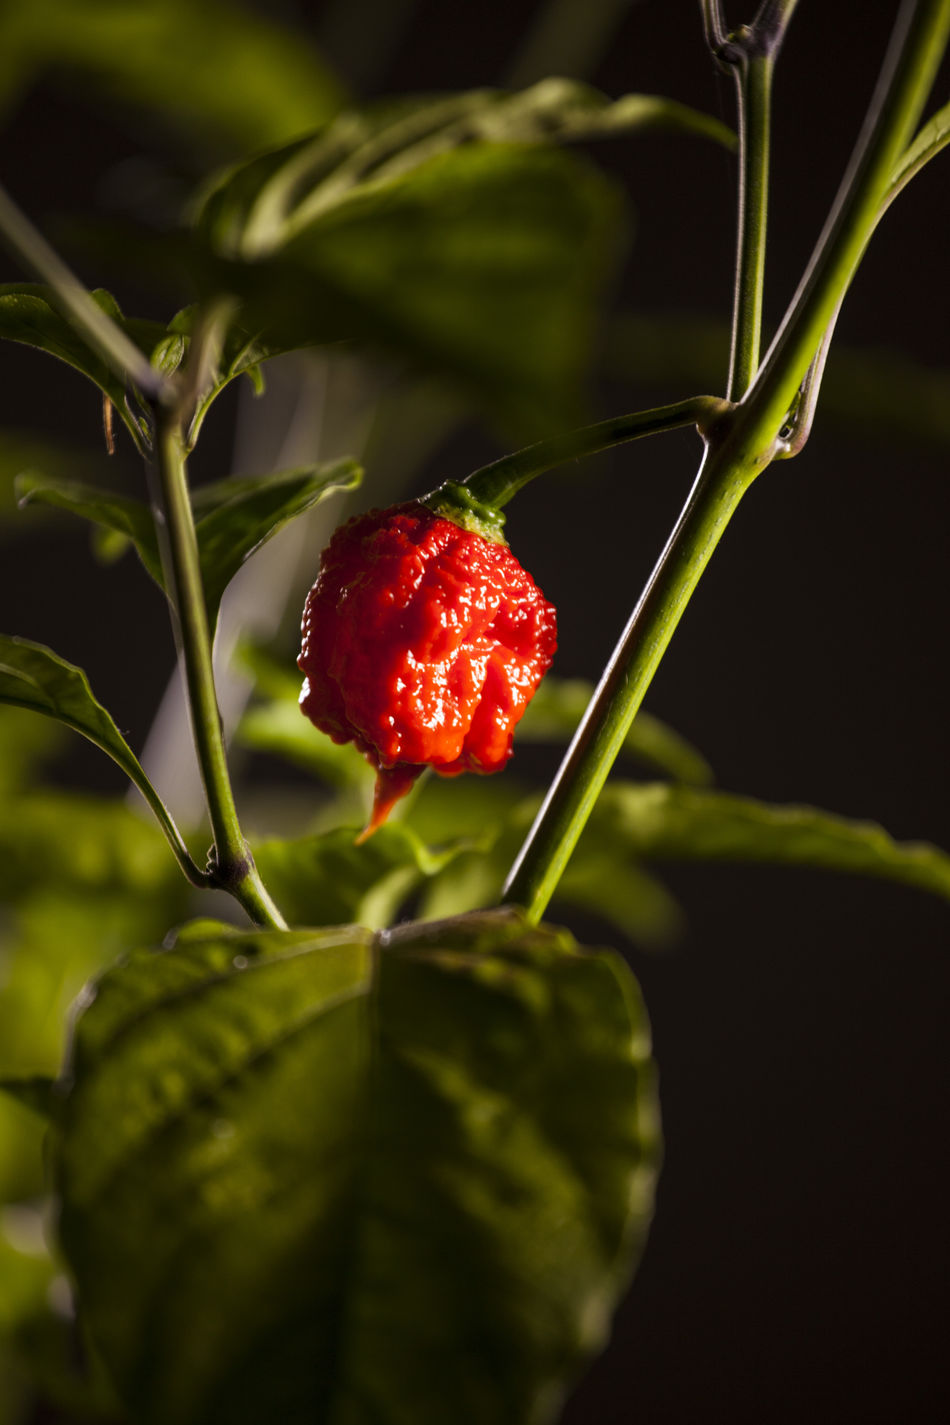 Agriculture Backgrounds Beauty In Nature Carolina Reaper Close-up Day Food Food And Drink Freshness Fruit Green Color Growth Healthy Eating Hot Hot Pepper Hot Peppers Plants Leaf Nature No People Outdoors Plant Red